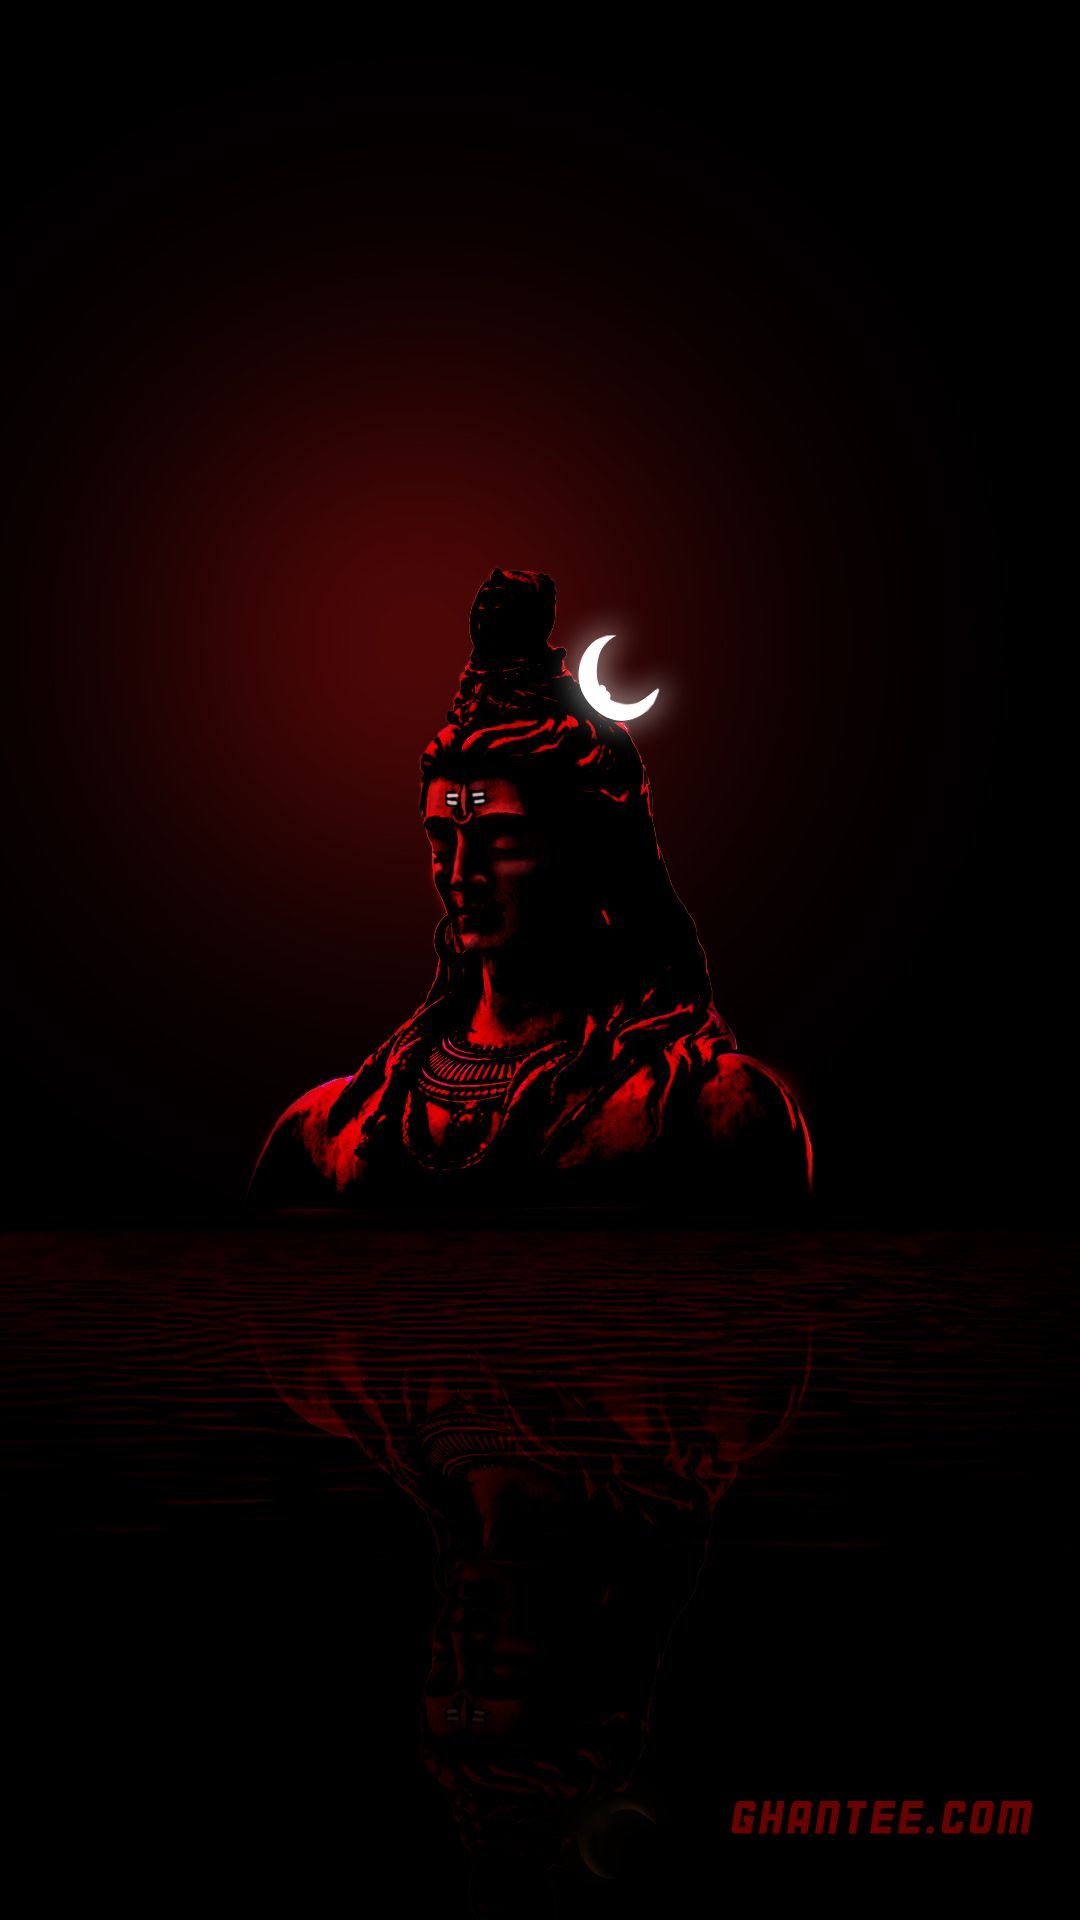 24 Best Lord Shiva Wallpapers For Mobile Devices Ghantee Shiva Wallpaper Lord Krishna Hd Wallpaper Photos Of Lord Shiva